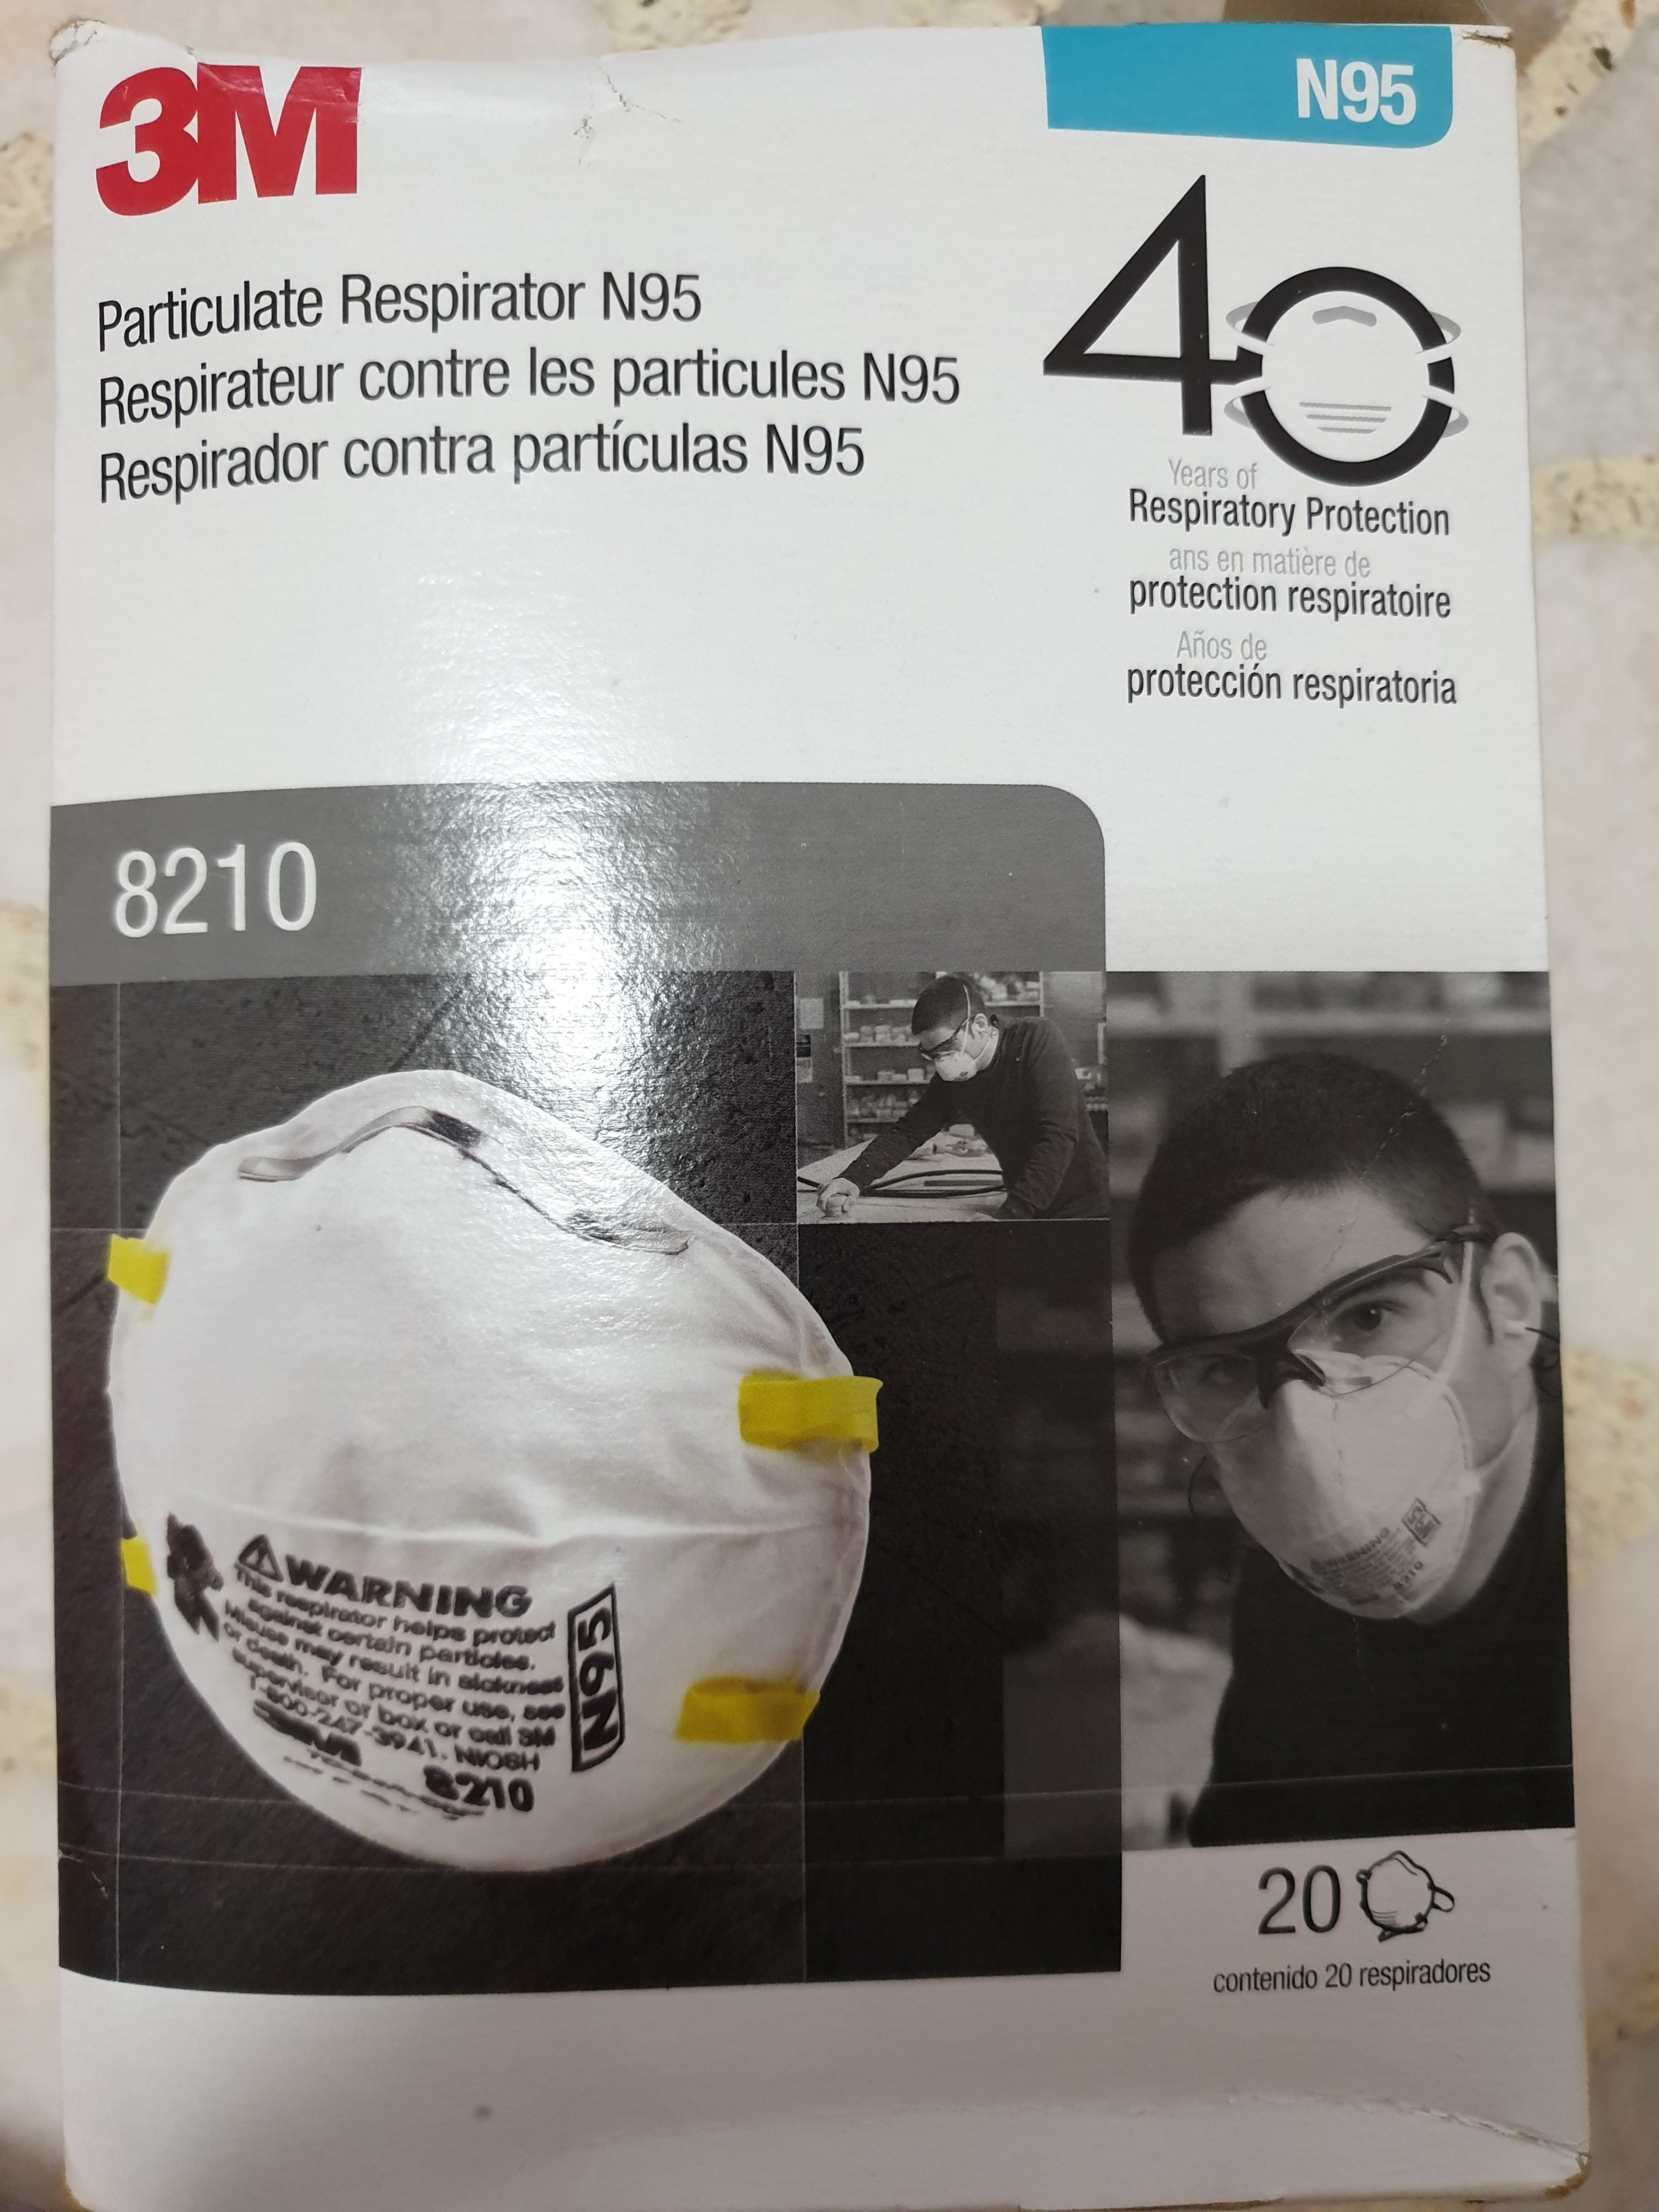 Else 3m Of On N95 Everything 8210 - Carousell Mask 20 Box model